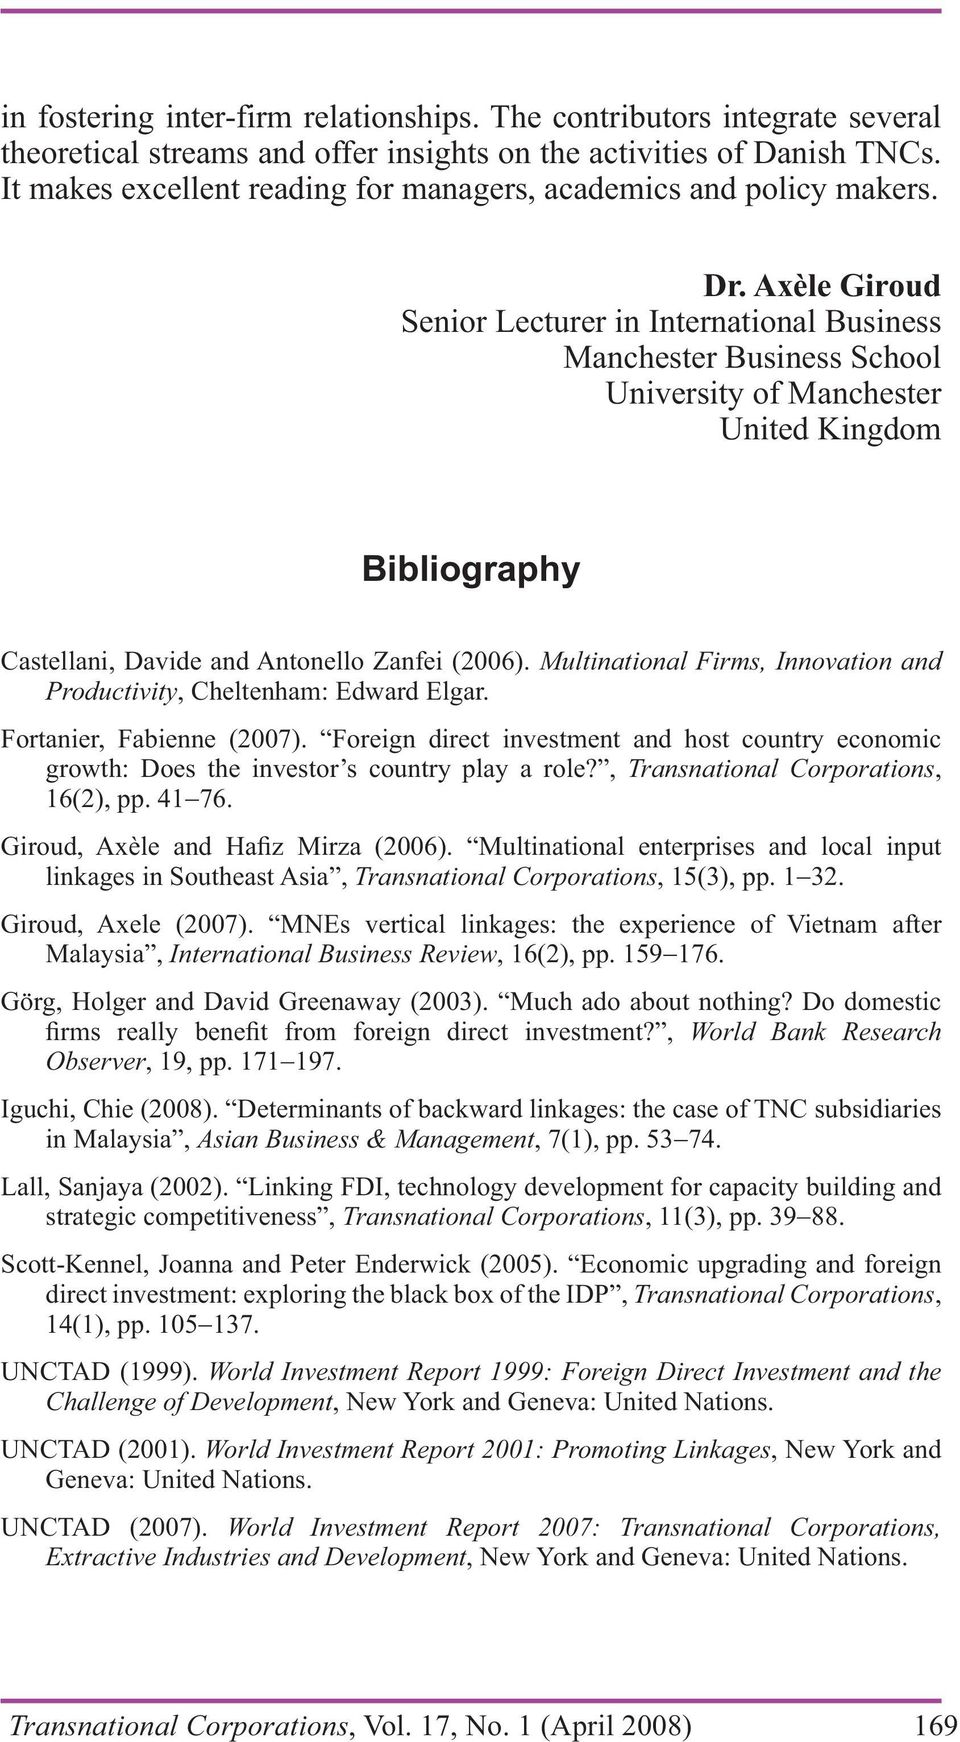 Axèle Giroud Senior Lecturer in International Business Manchester Business School University of Manchester United Kingdom Bibliography Castellani, Davide and Antonello Zanfei (2006).